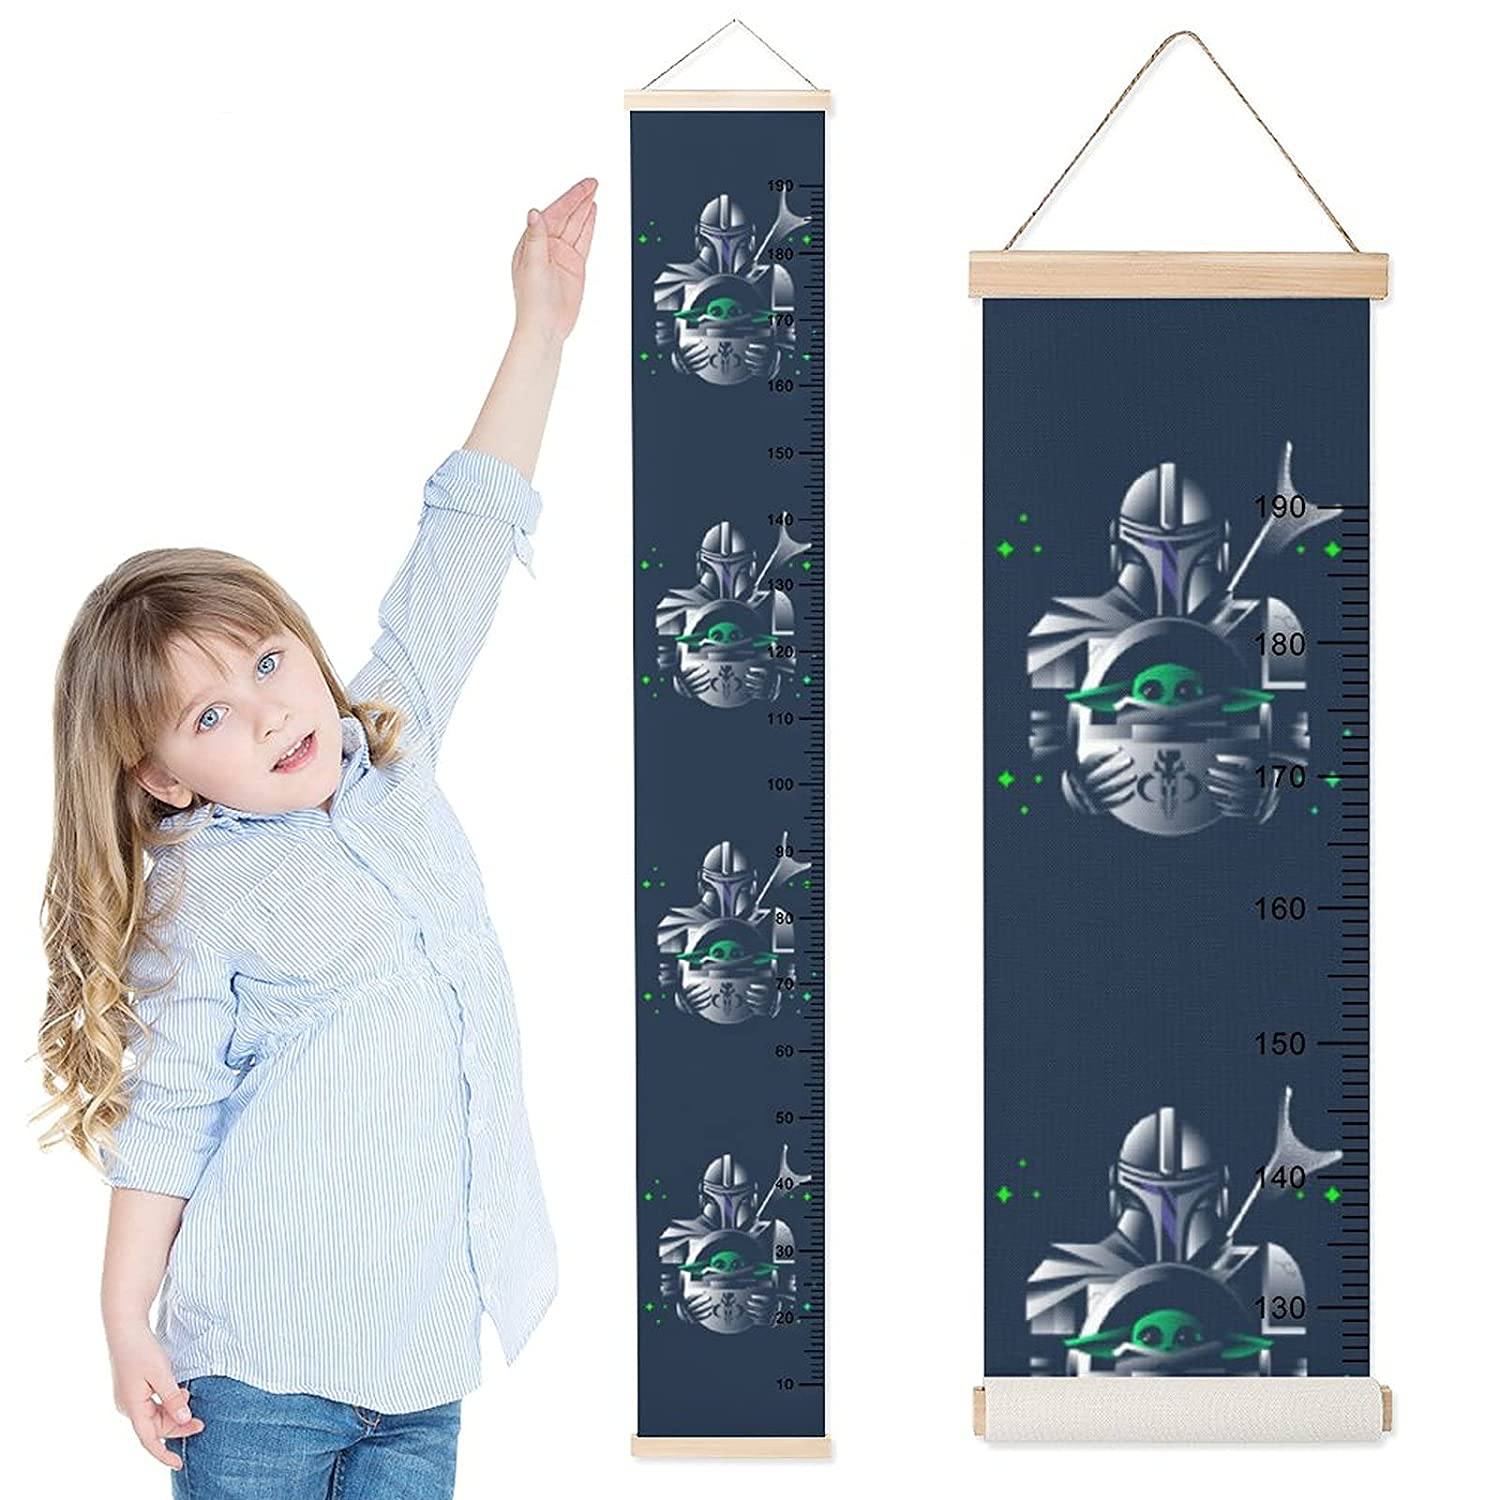 TM Mando and The Child Height Rulers Growth Chart 1